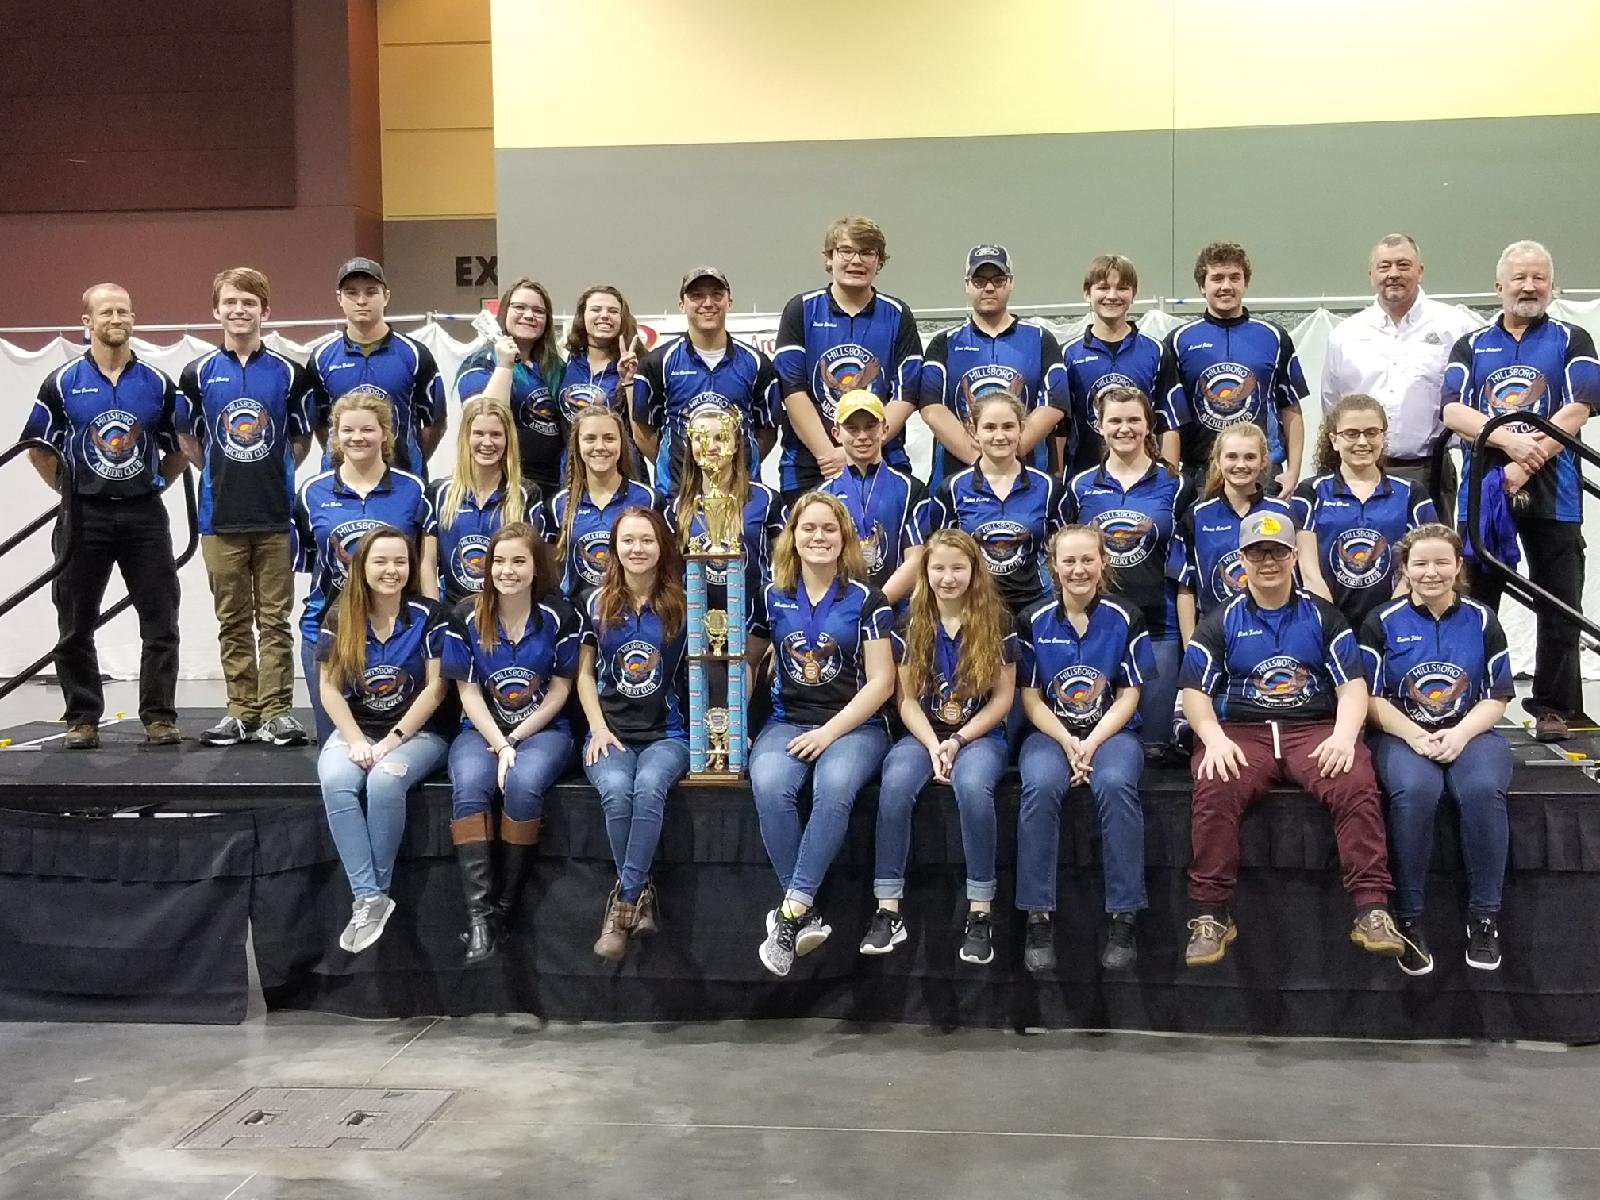 High School Archers win 2018 State Championship